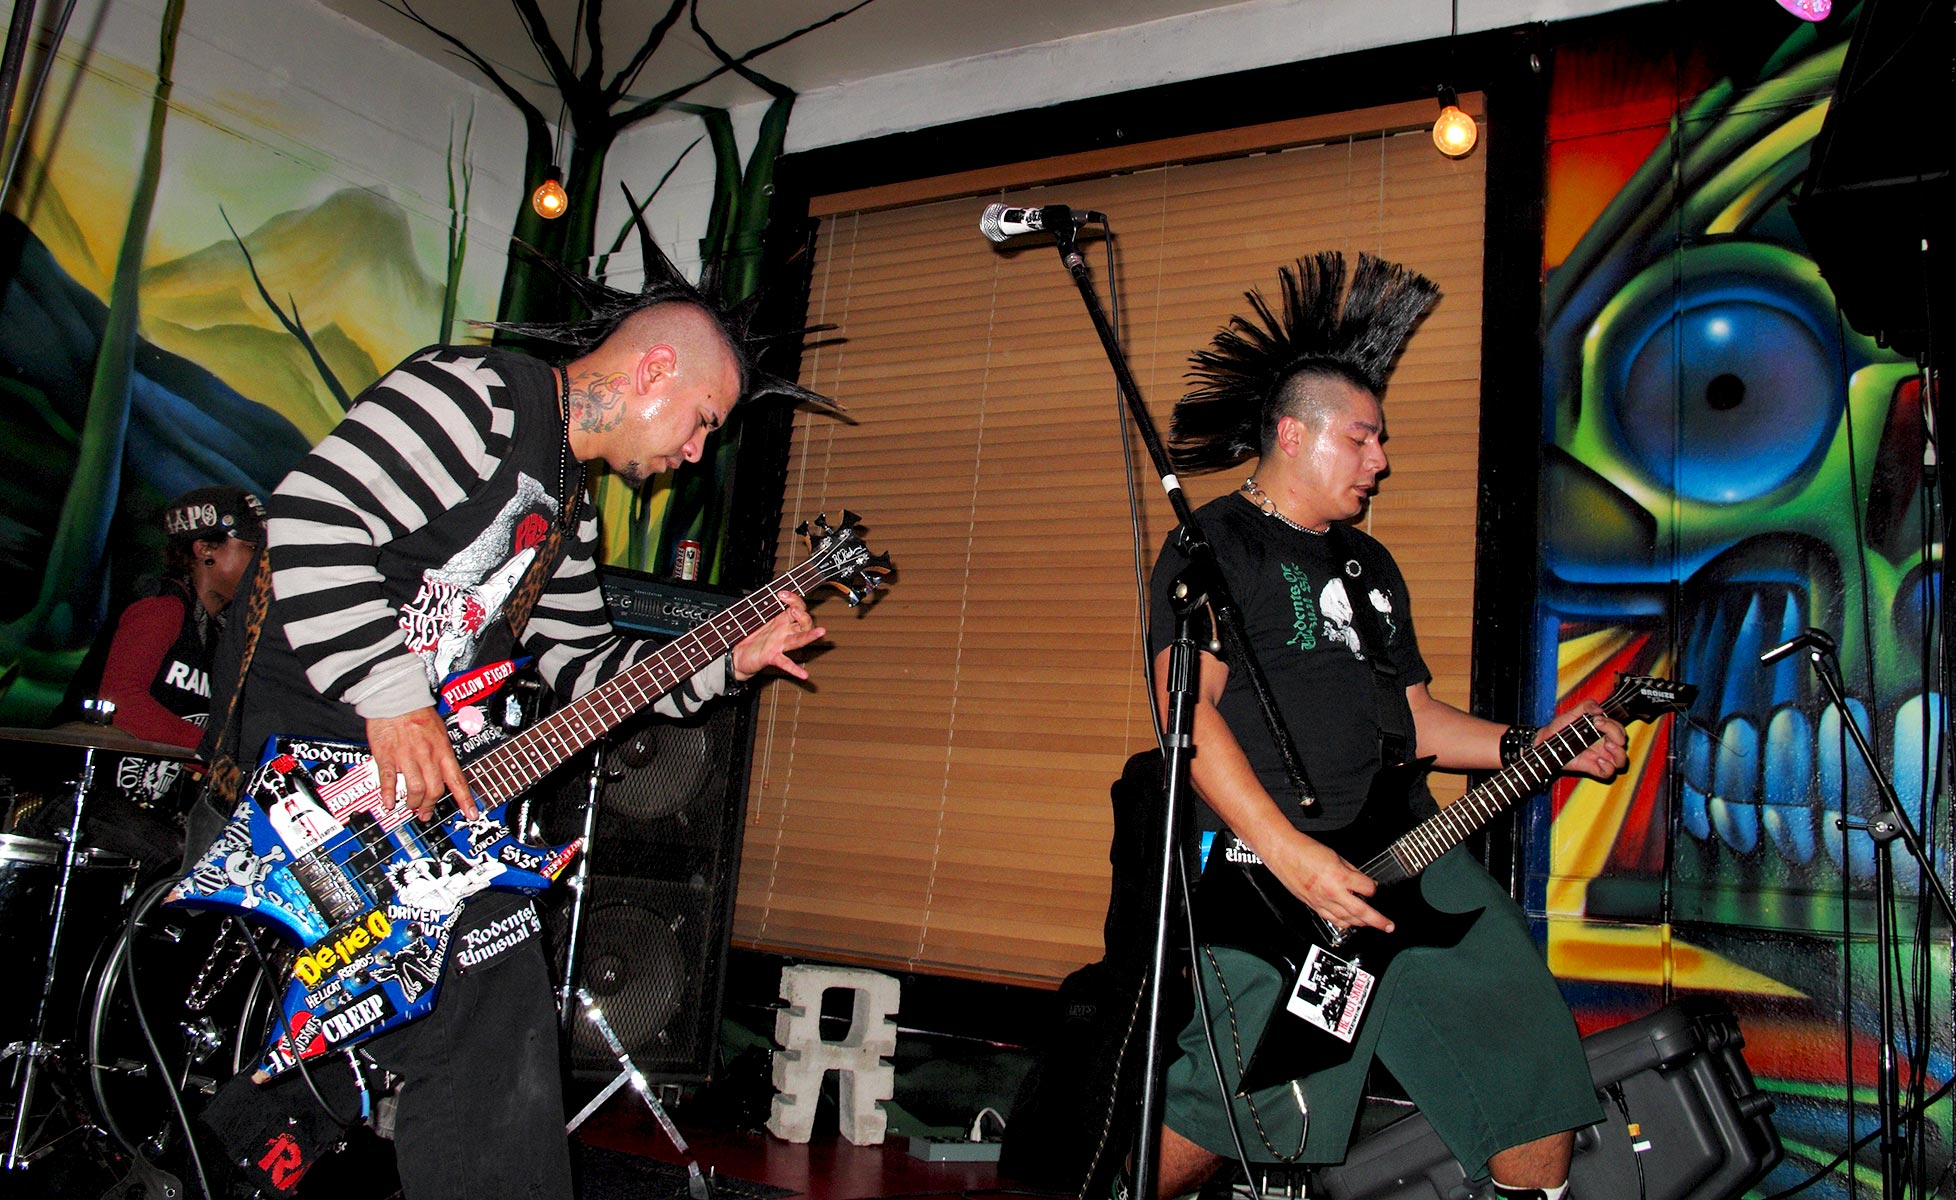 The Outskirts punk rock mohawks